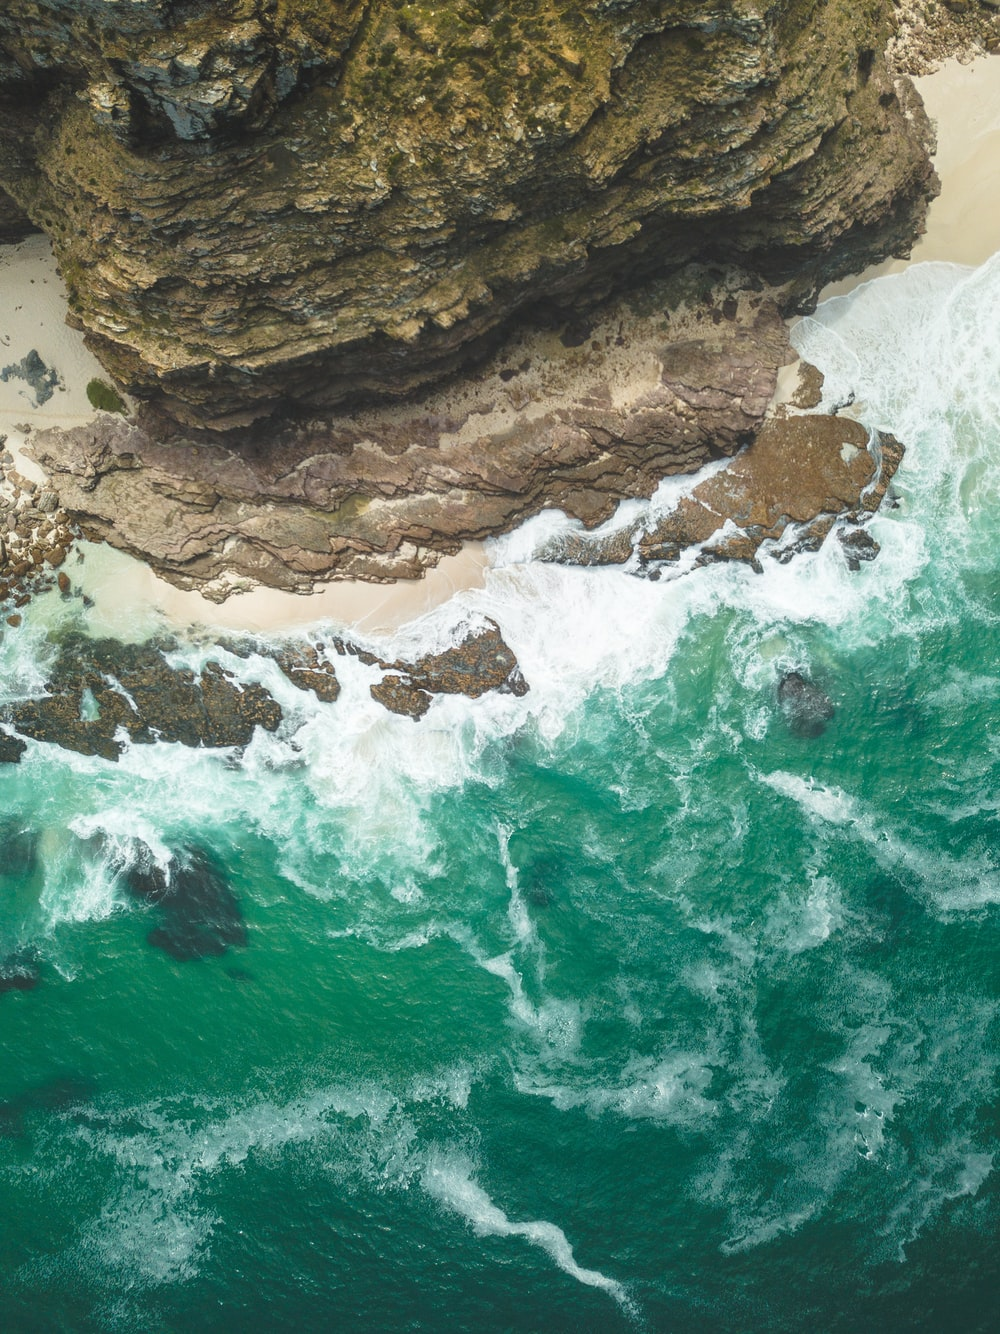 aerial photography of cliff near body of water